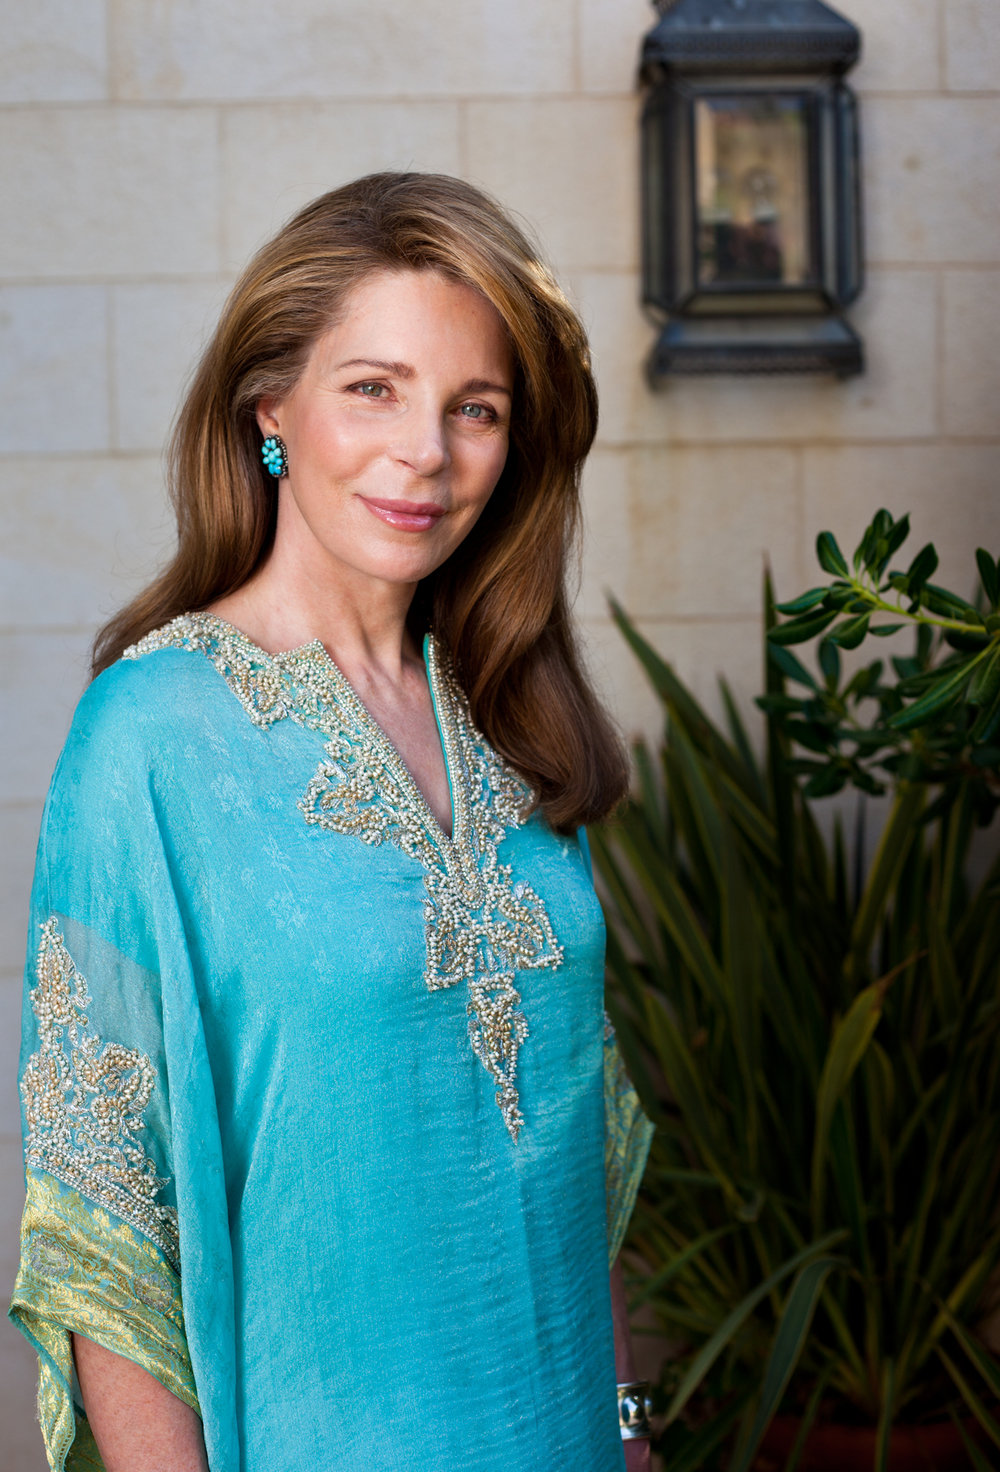 Her Majesty Queen Noor of Jordan, photographed for JO Magazine on July 21, 2011.